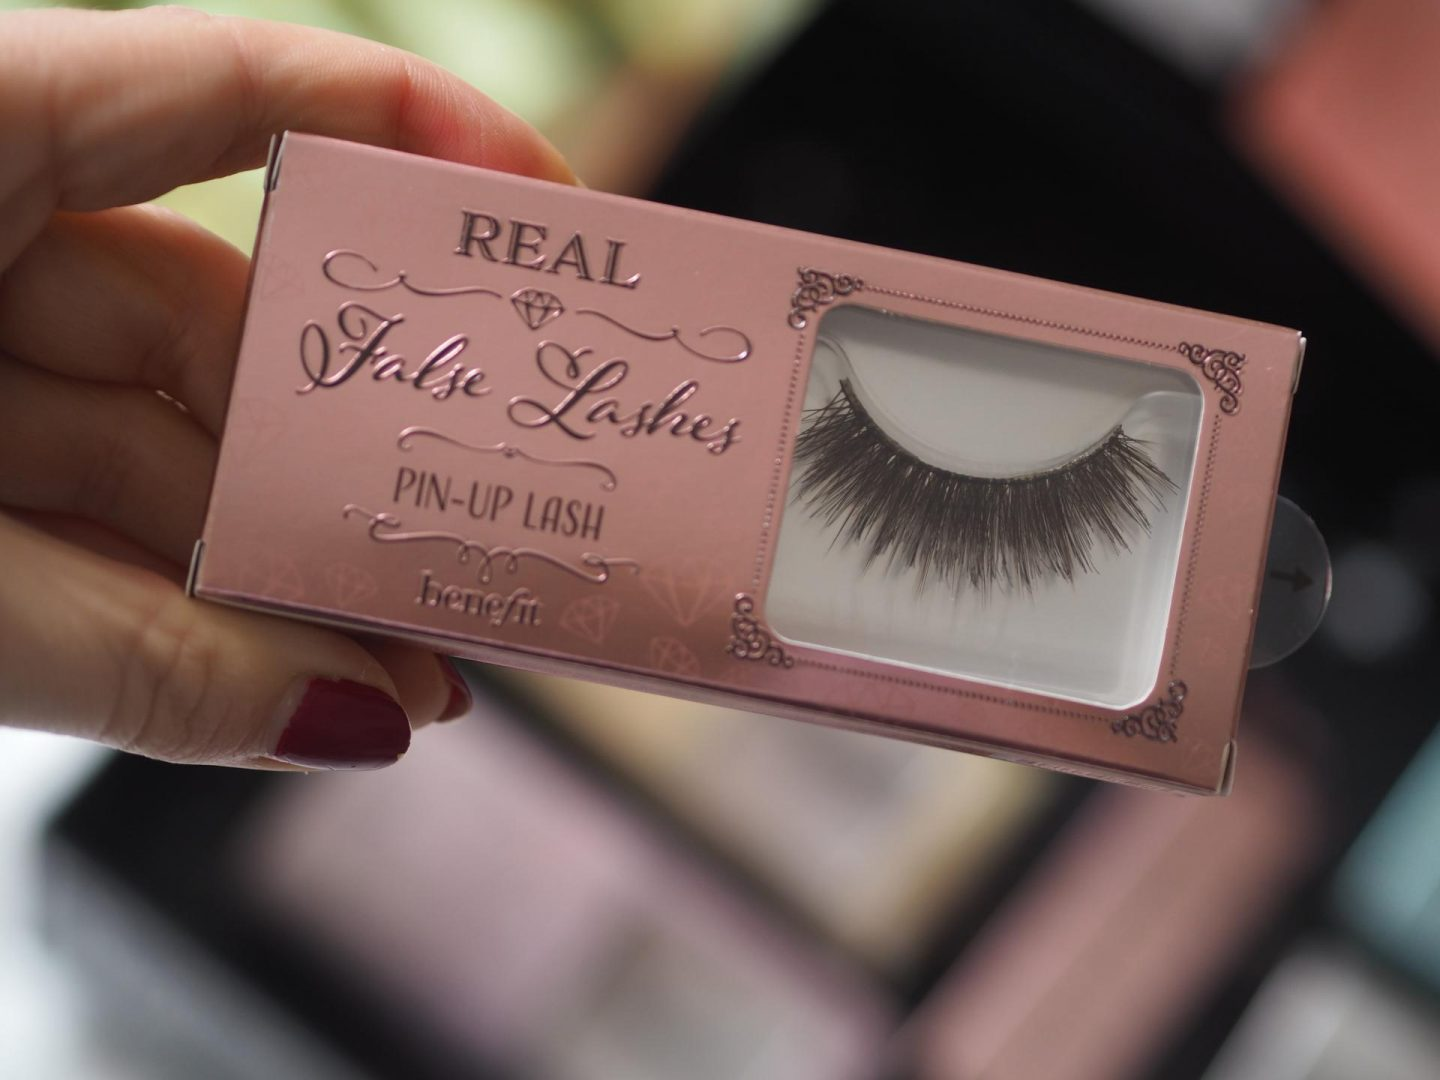 d5ff7d8bba7 ... Best Lash And Brow Products - Product: Benefit Real False Lashes